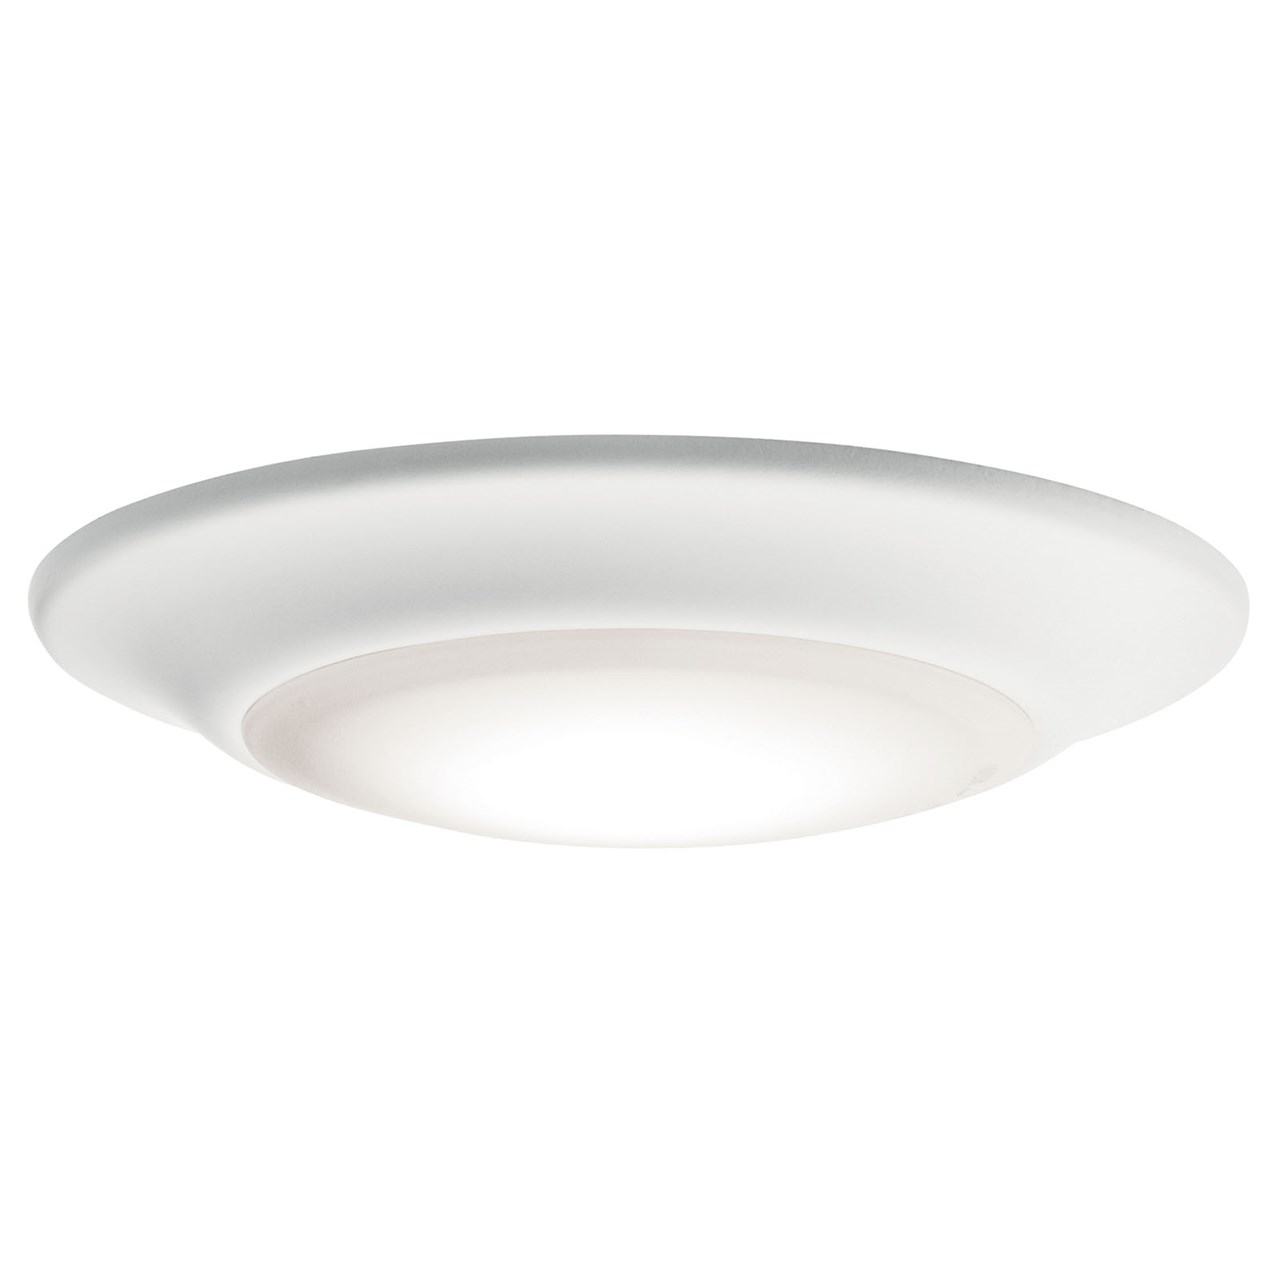 "Downlight Gen I 6"" 3000K LED Flush Mount White"